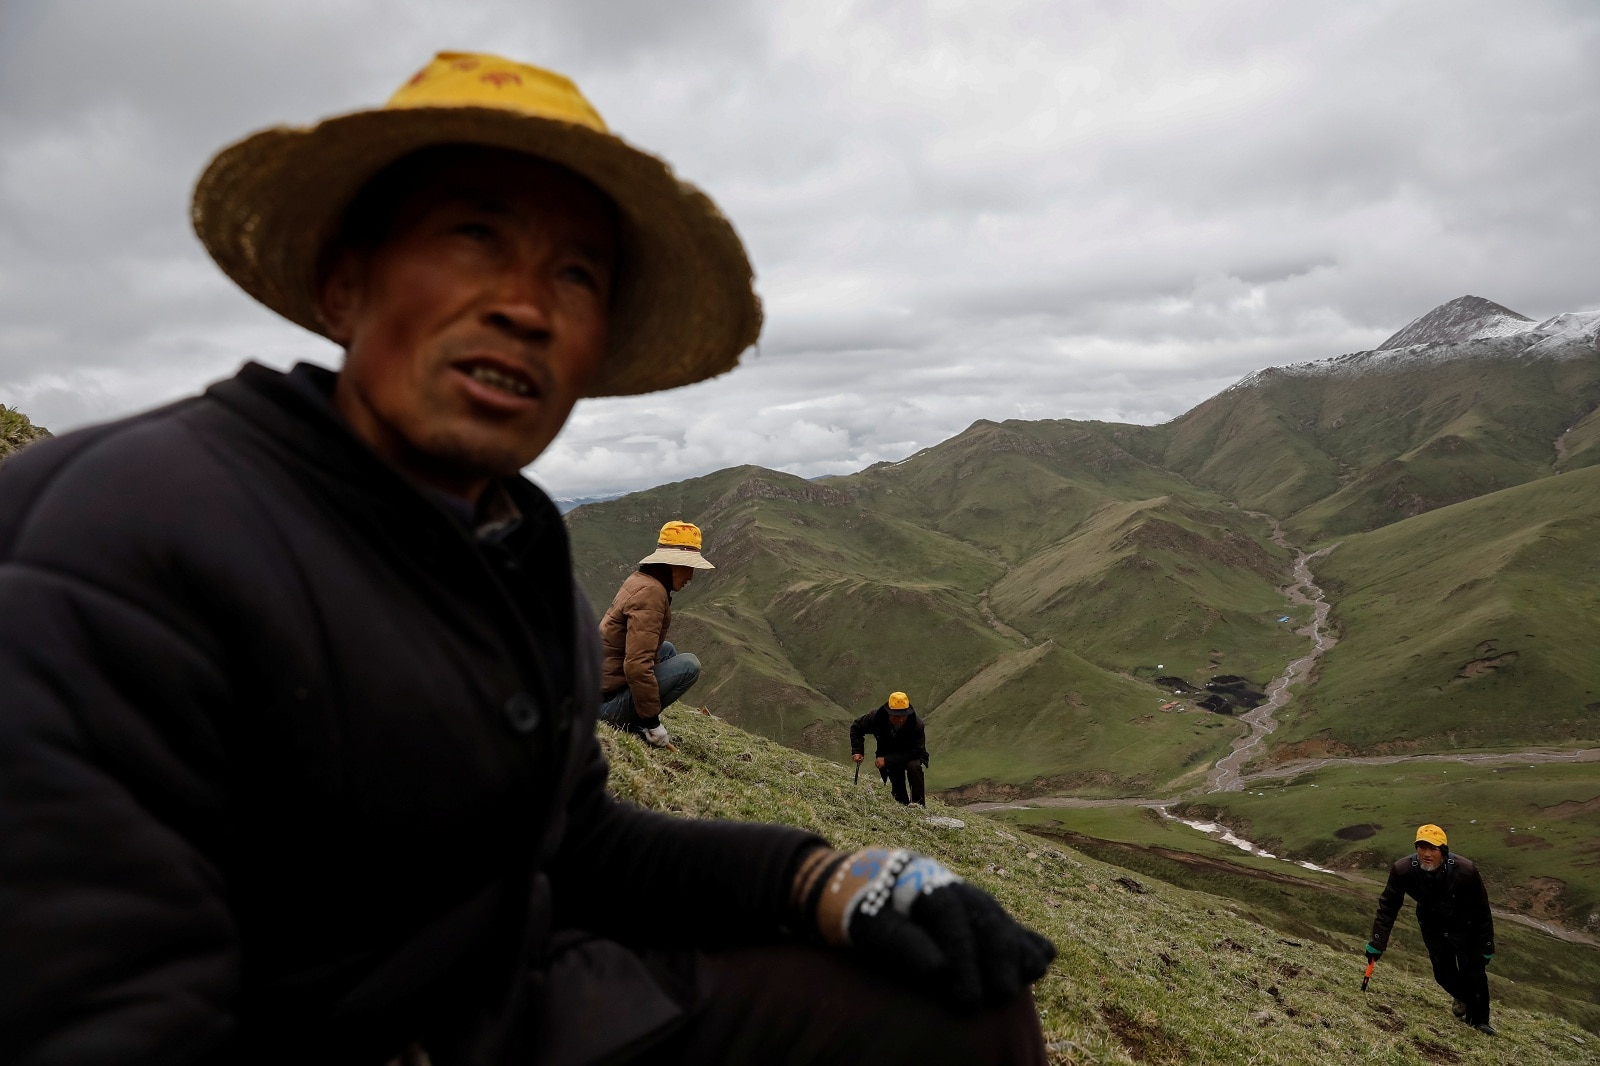 Cordyceps picker Xing Hairen, 51, looks on as others scan the ground to find Ophiocordyceps sinensis, a fungus believed to possess aphrodisiac and medicinal powers, on a mountain in the Amne Machin range in China's western Qinghai province, June 8, 2019. REUTERS/Aly Song